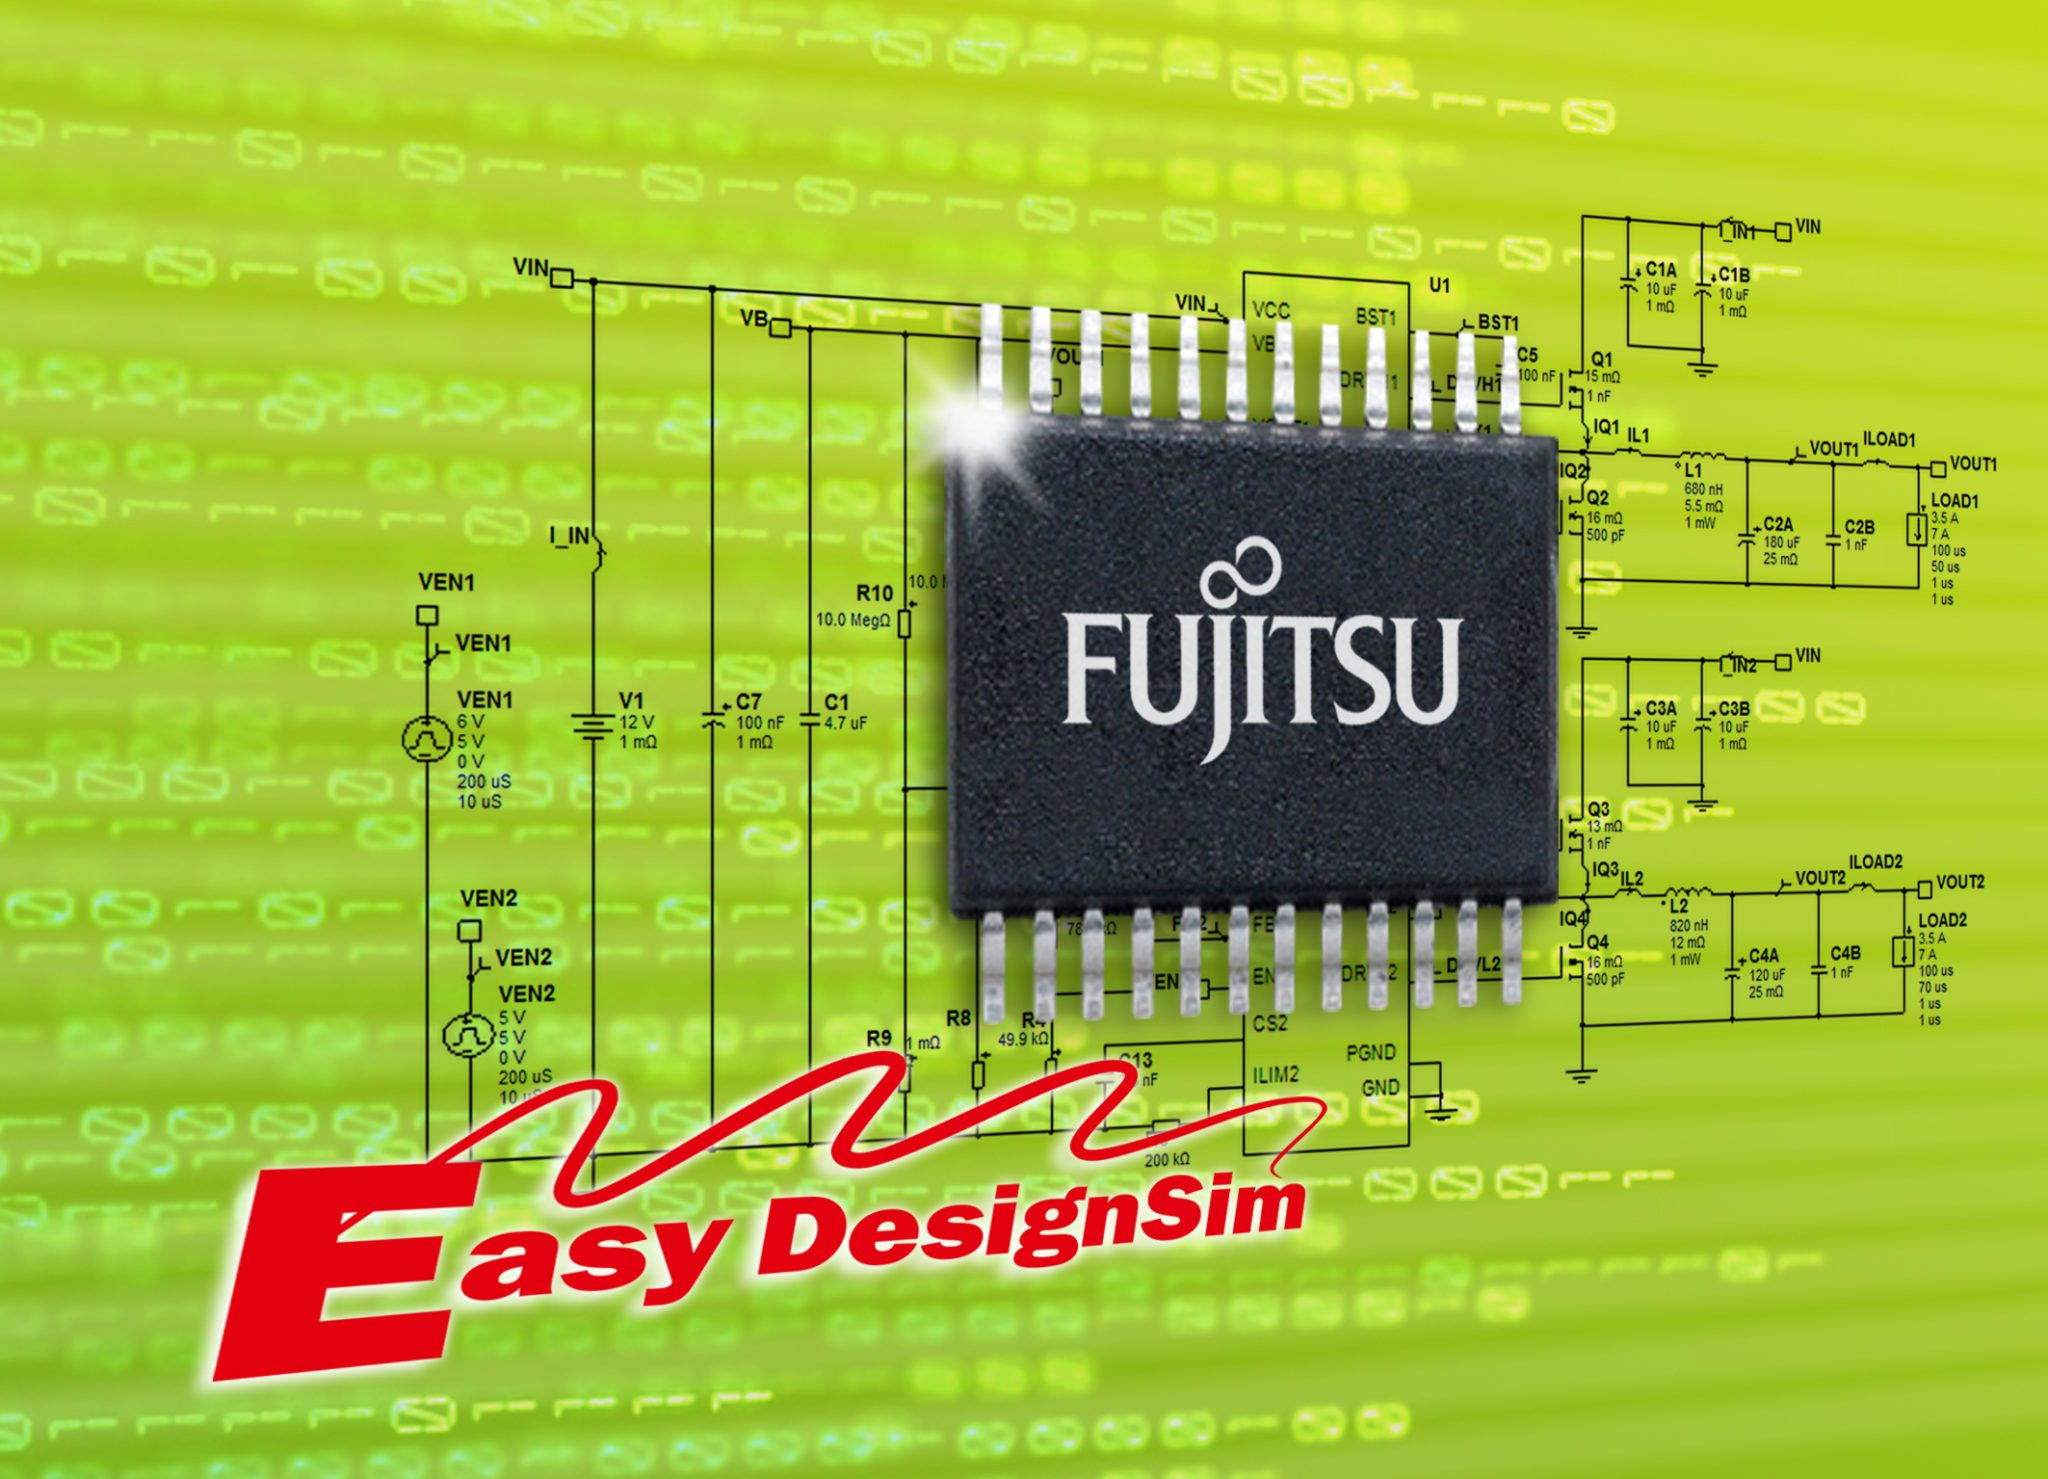 Fujitsu Announces Web Based Design Simulation Tool Easy Designsim Circuit And Softwares For Power Management Ics